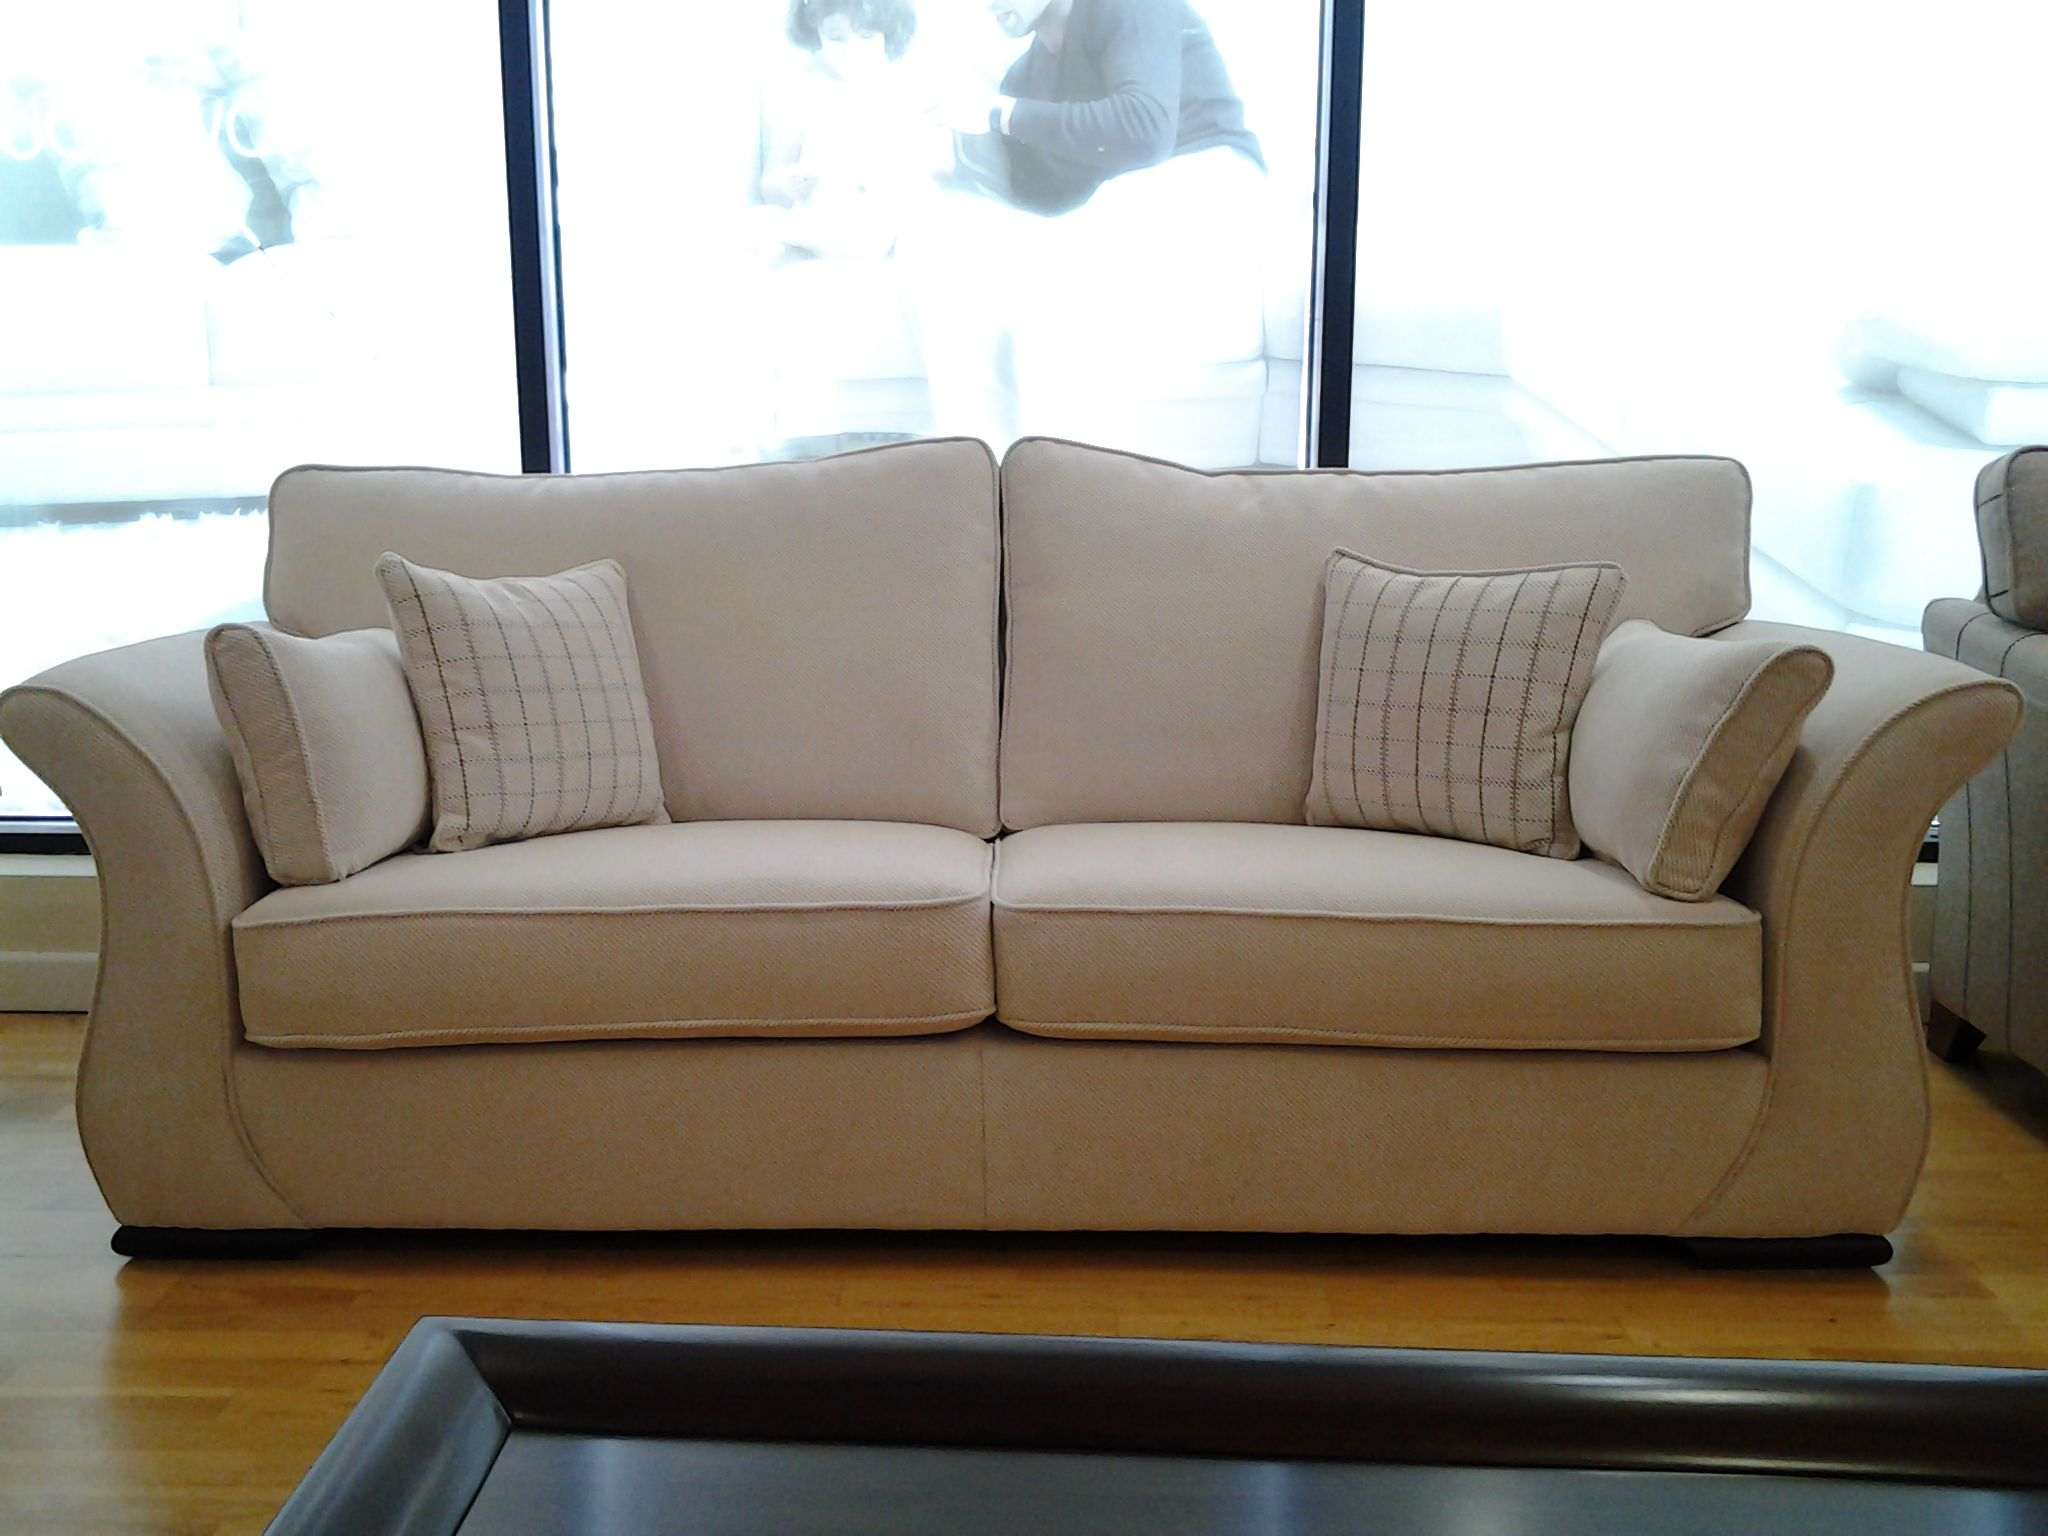 Check out the Monarch sofa from Sofaworks